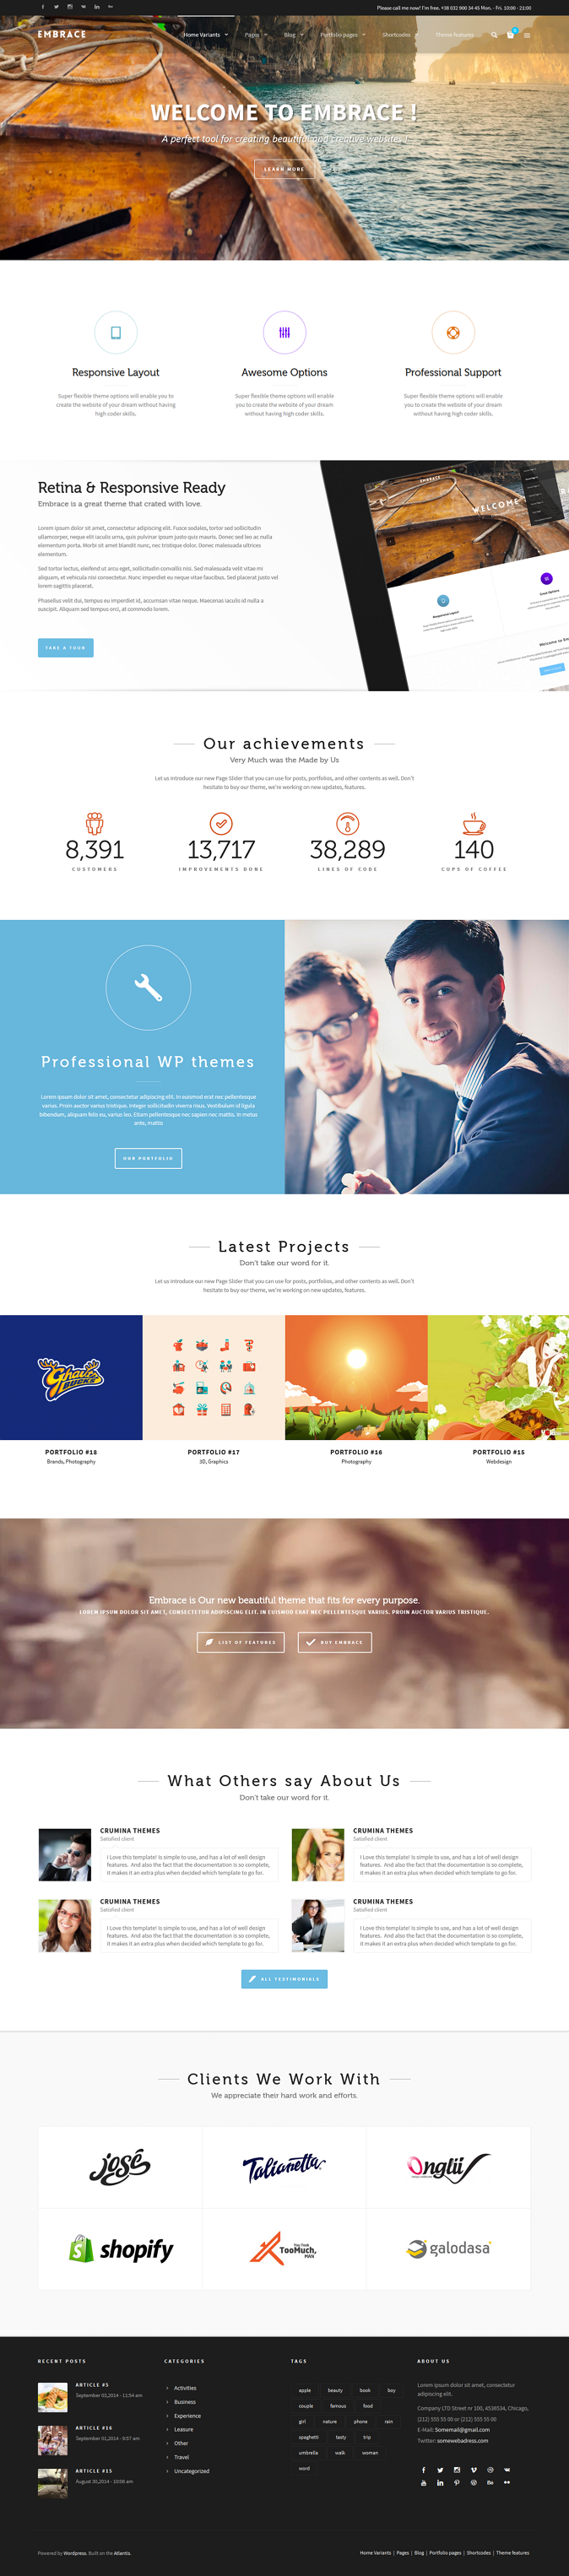 Embrace is multipurpose, powerful, responsive WordPress theme. It is equipped with endless optio ...